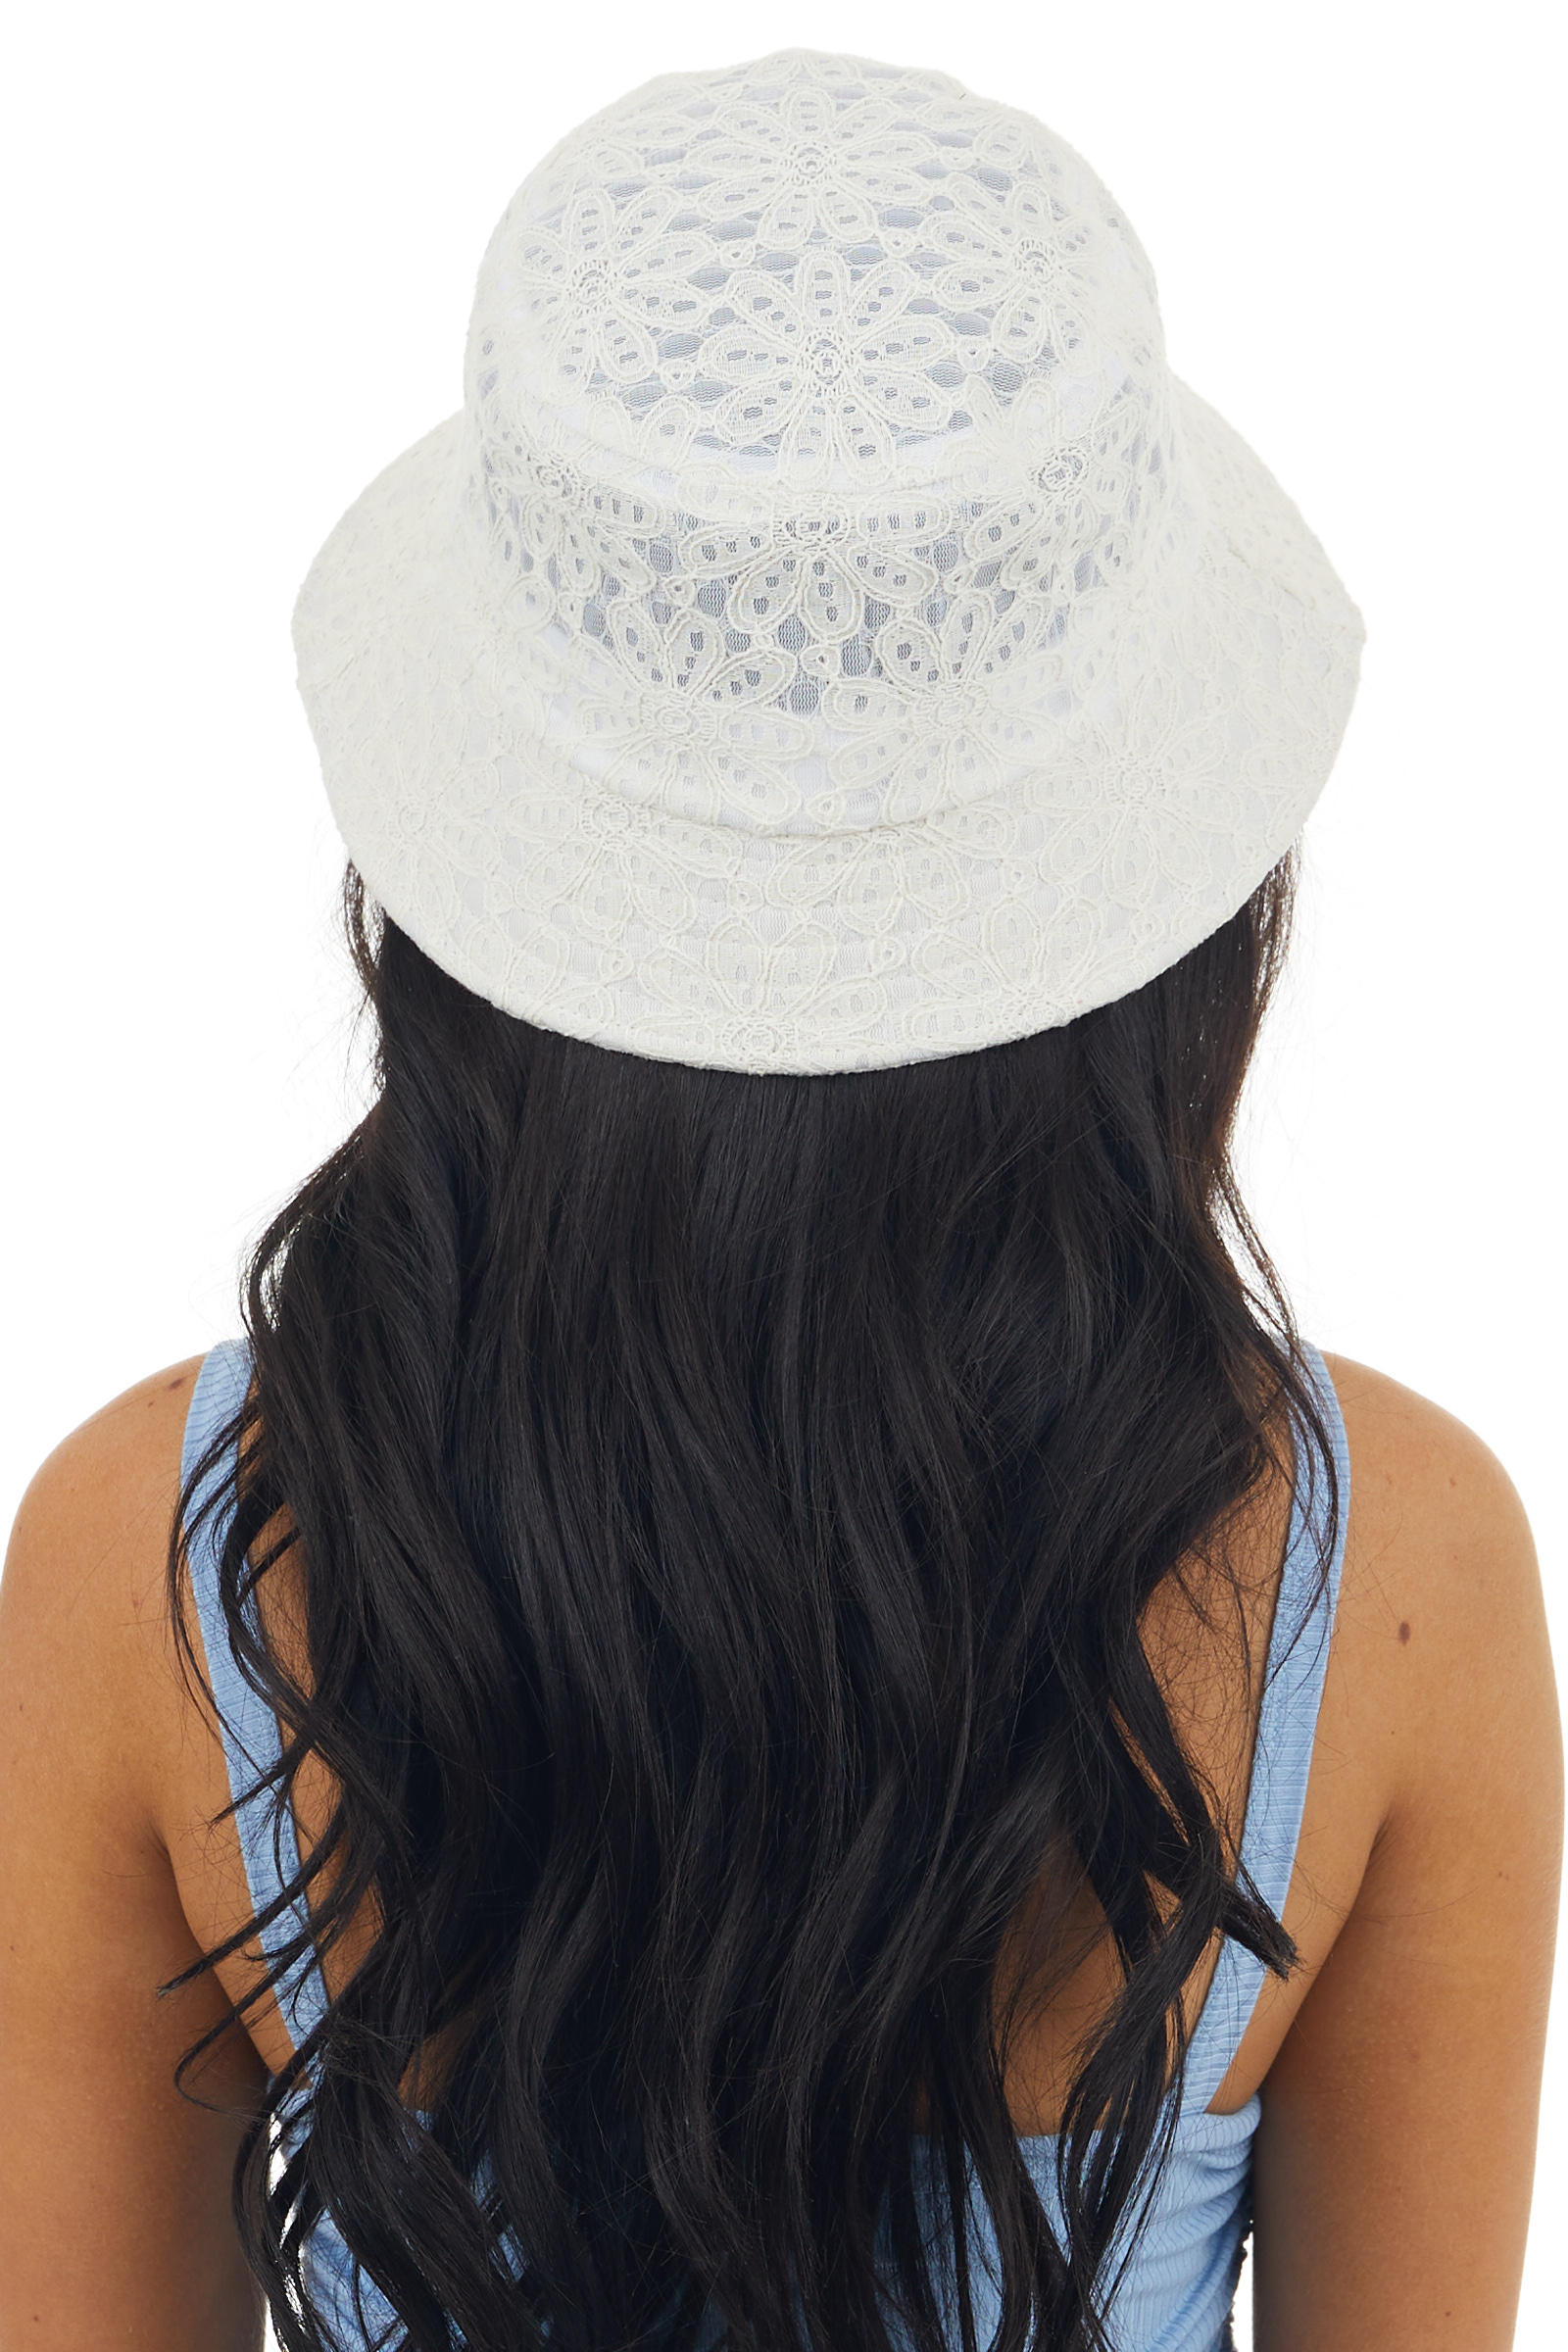 Ivory Floral Lace Bucket Hat with Sheer Mesh Details